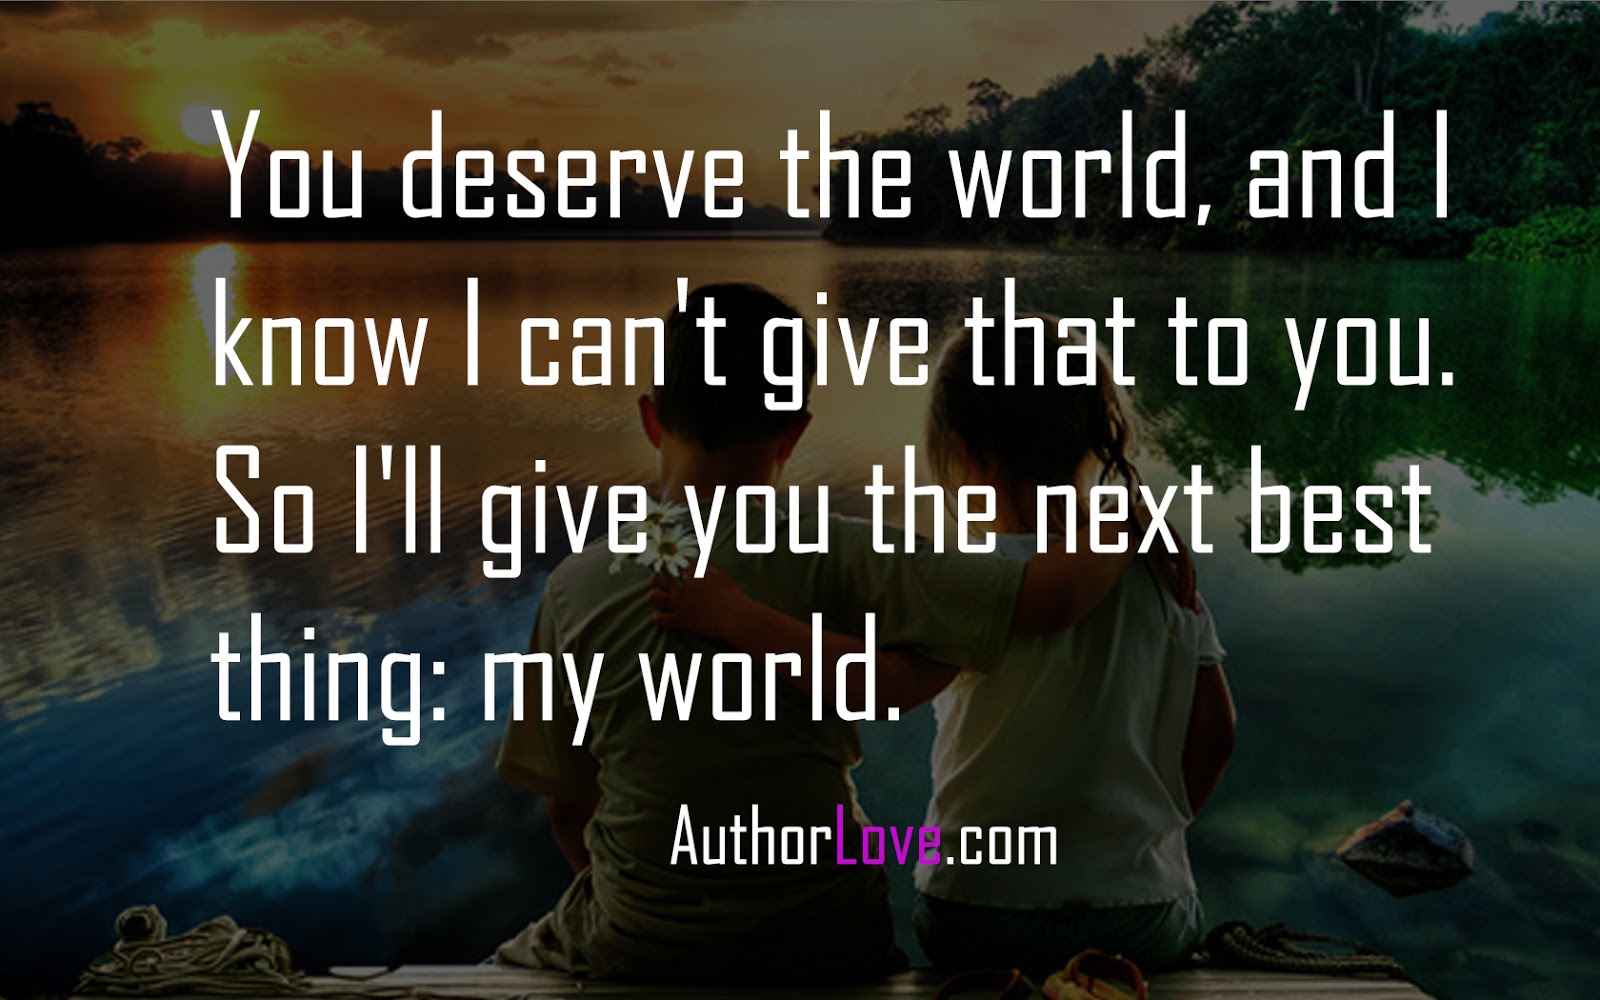 What do you have to offer the world?